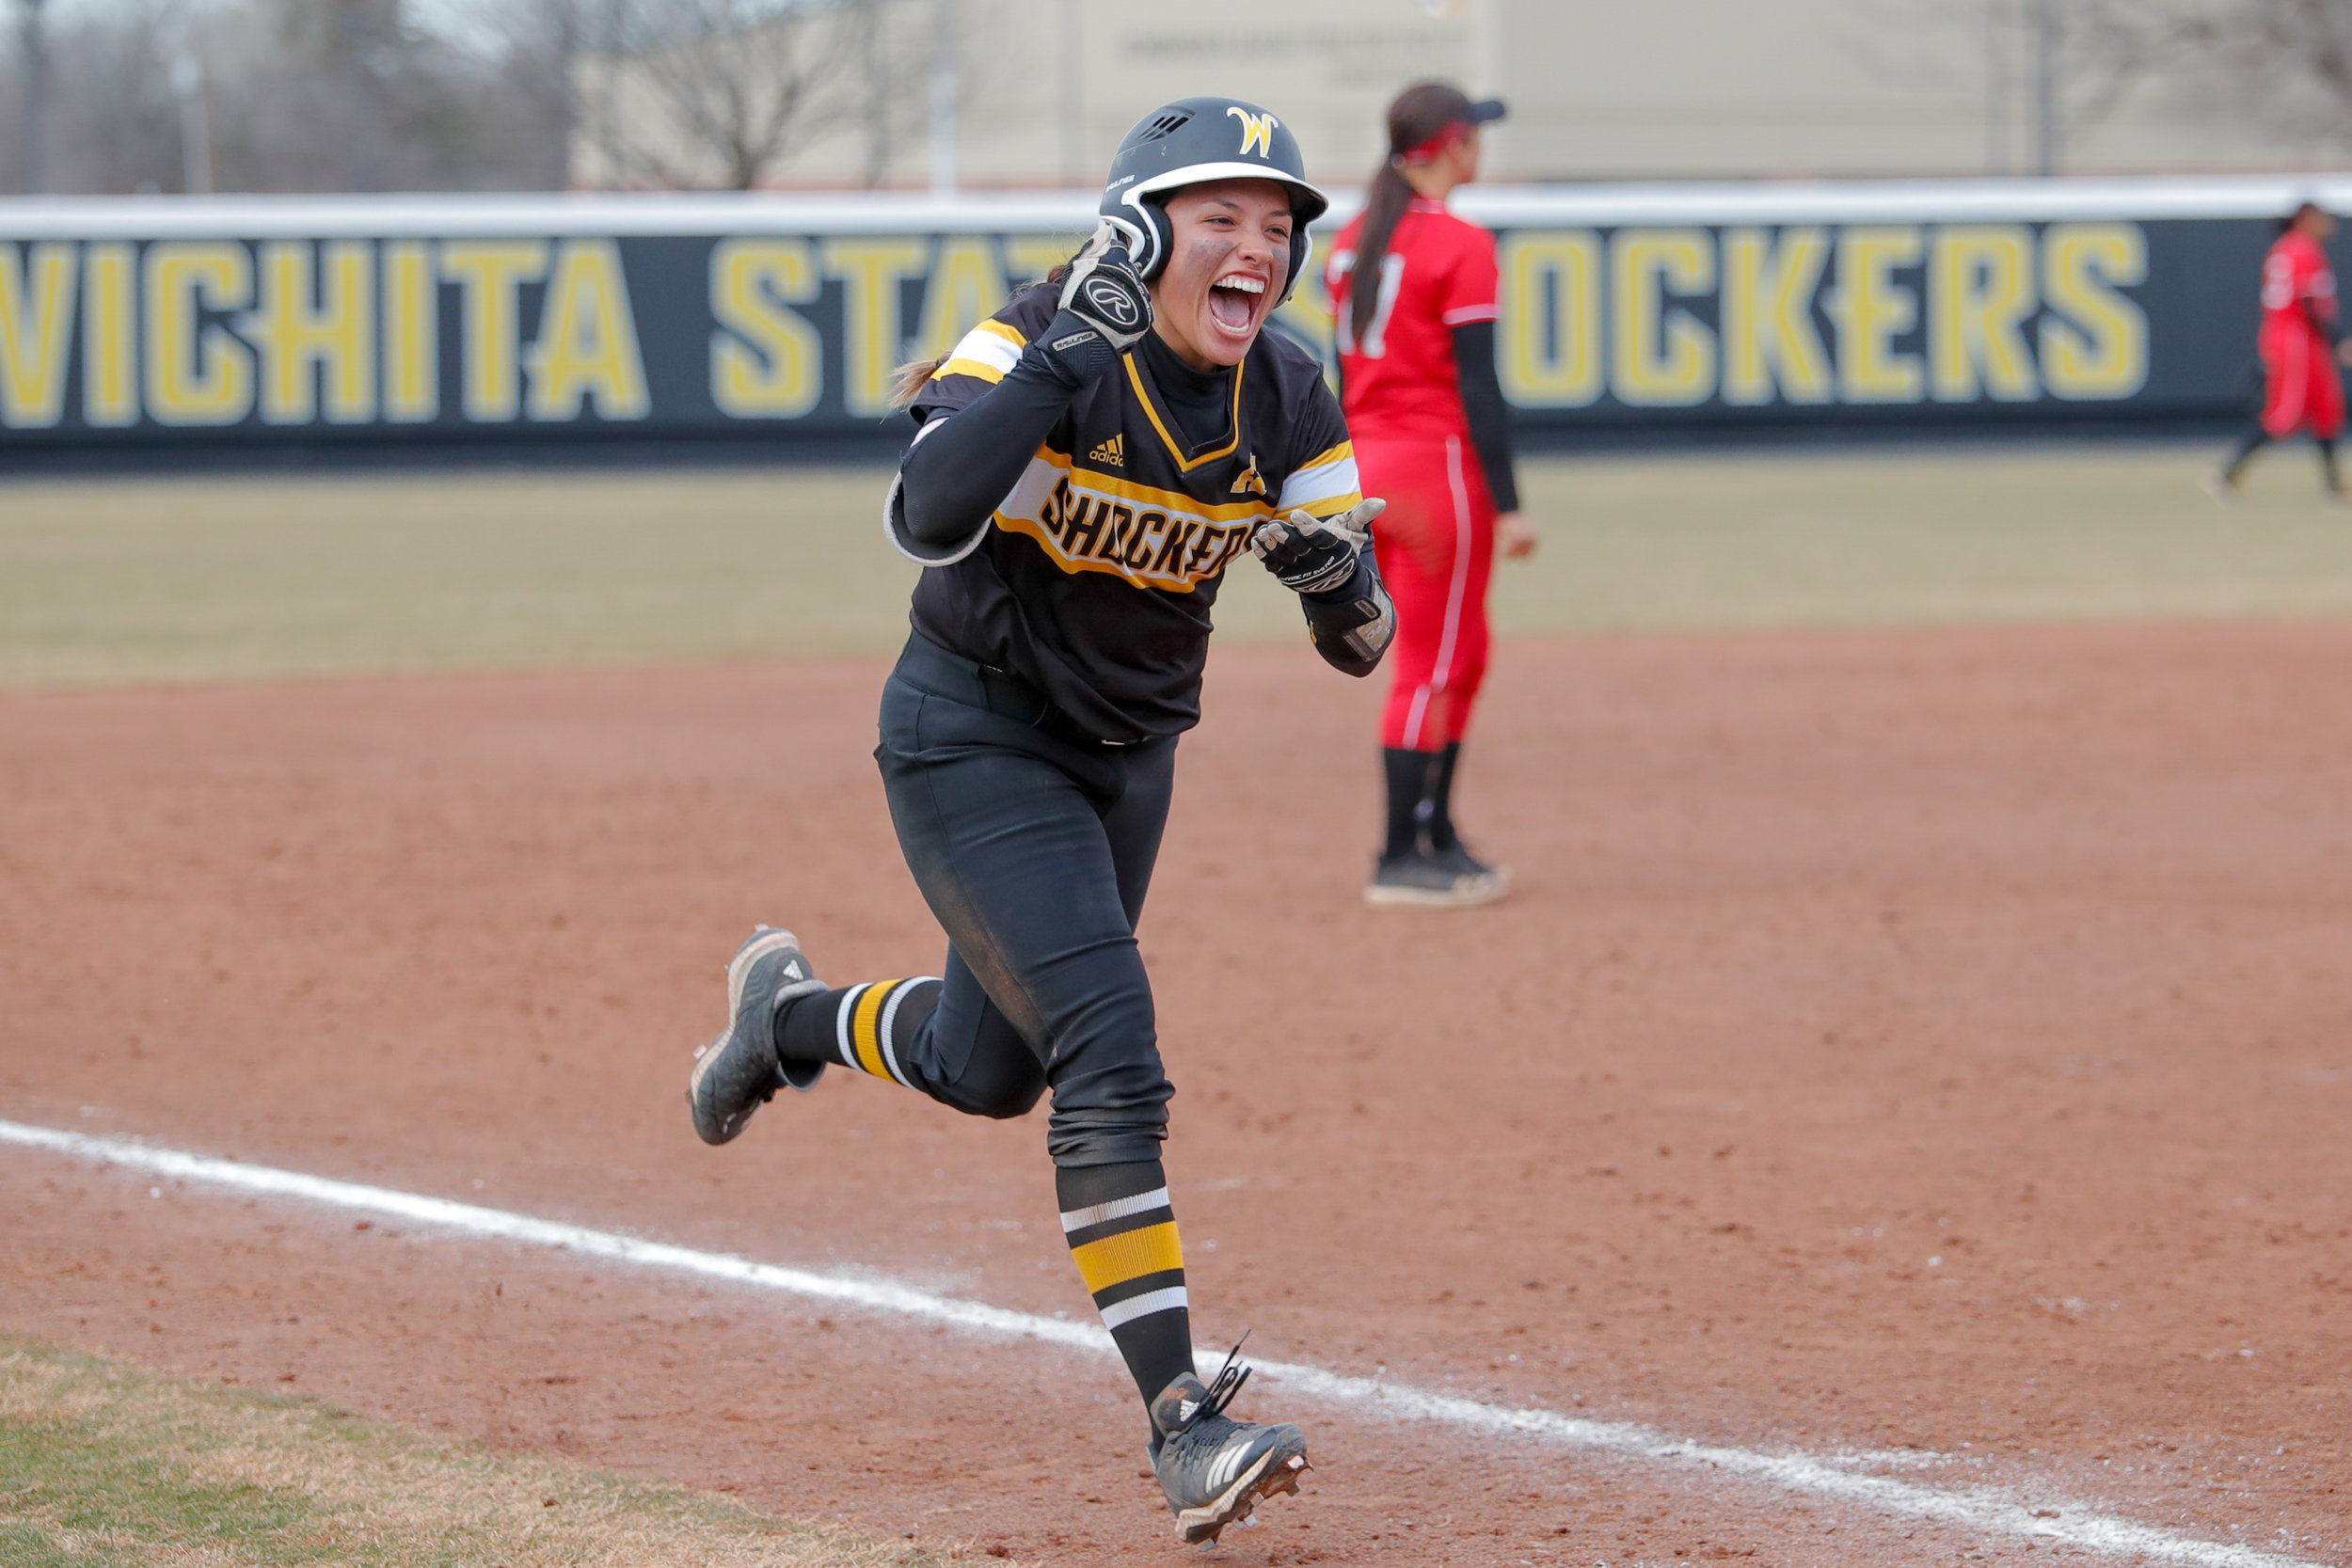 Wichita State softball beat Nebraska in their second game of the day 7-5 on March 10, 2019 at Wilkins Stadium. Photos taken for GoShockers.